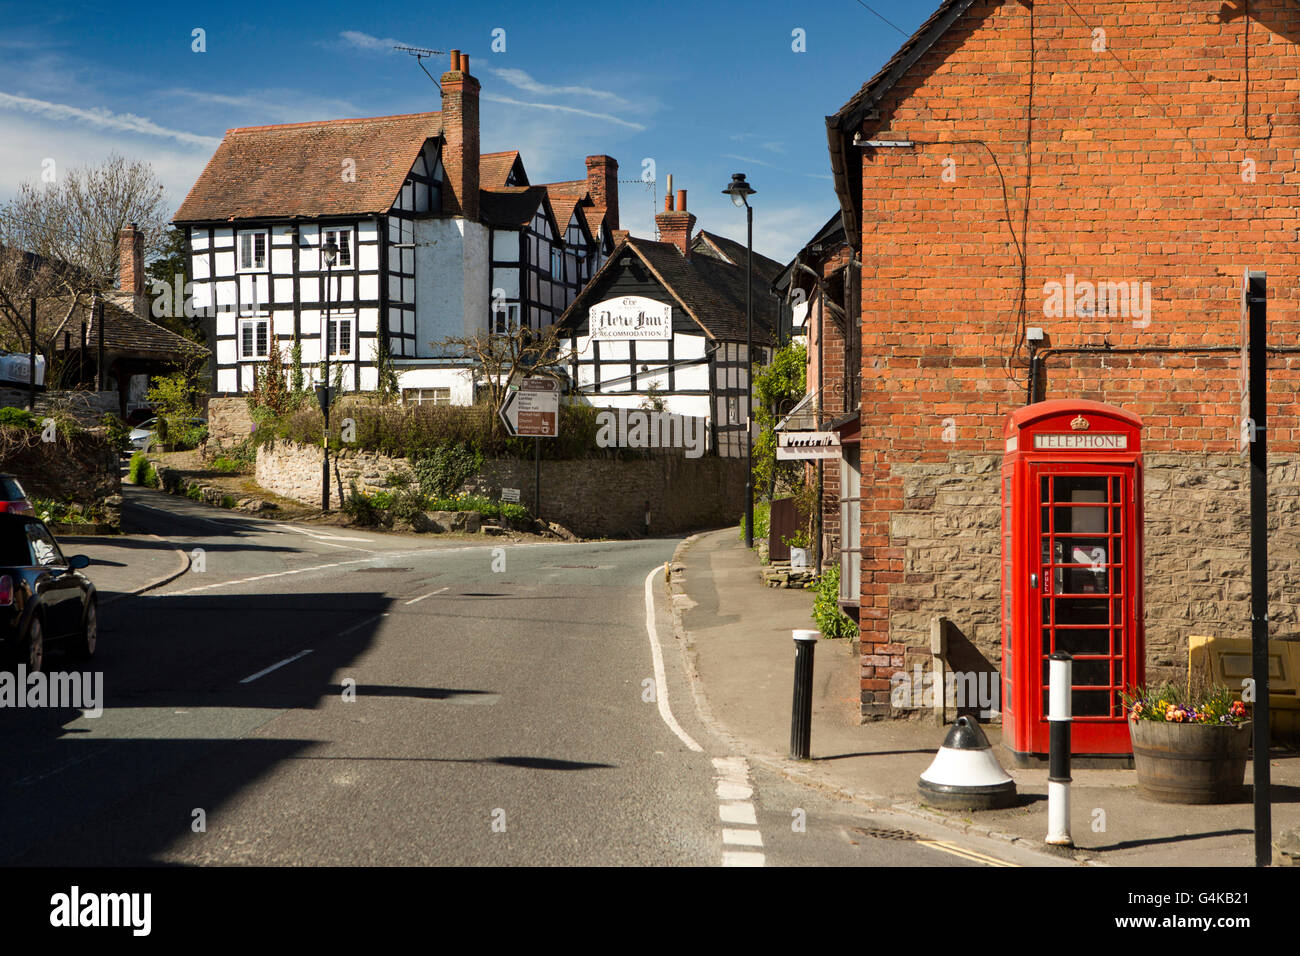 UK, England, Herefordshire, Pembridge, High Street, the New Inn and village phone box - Stock Image